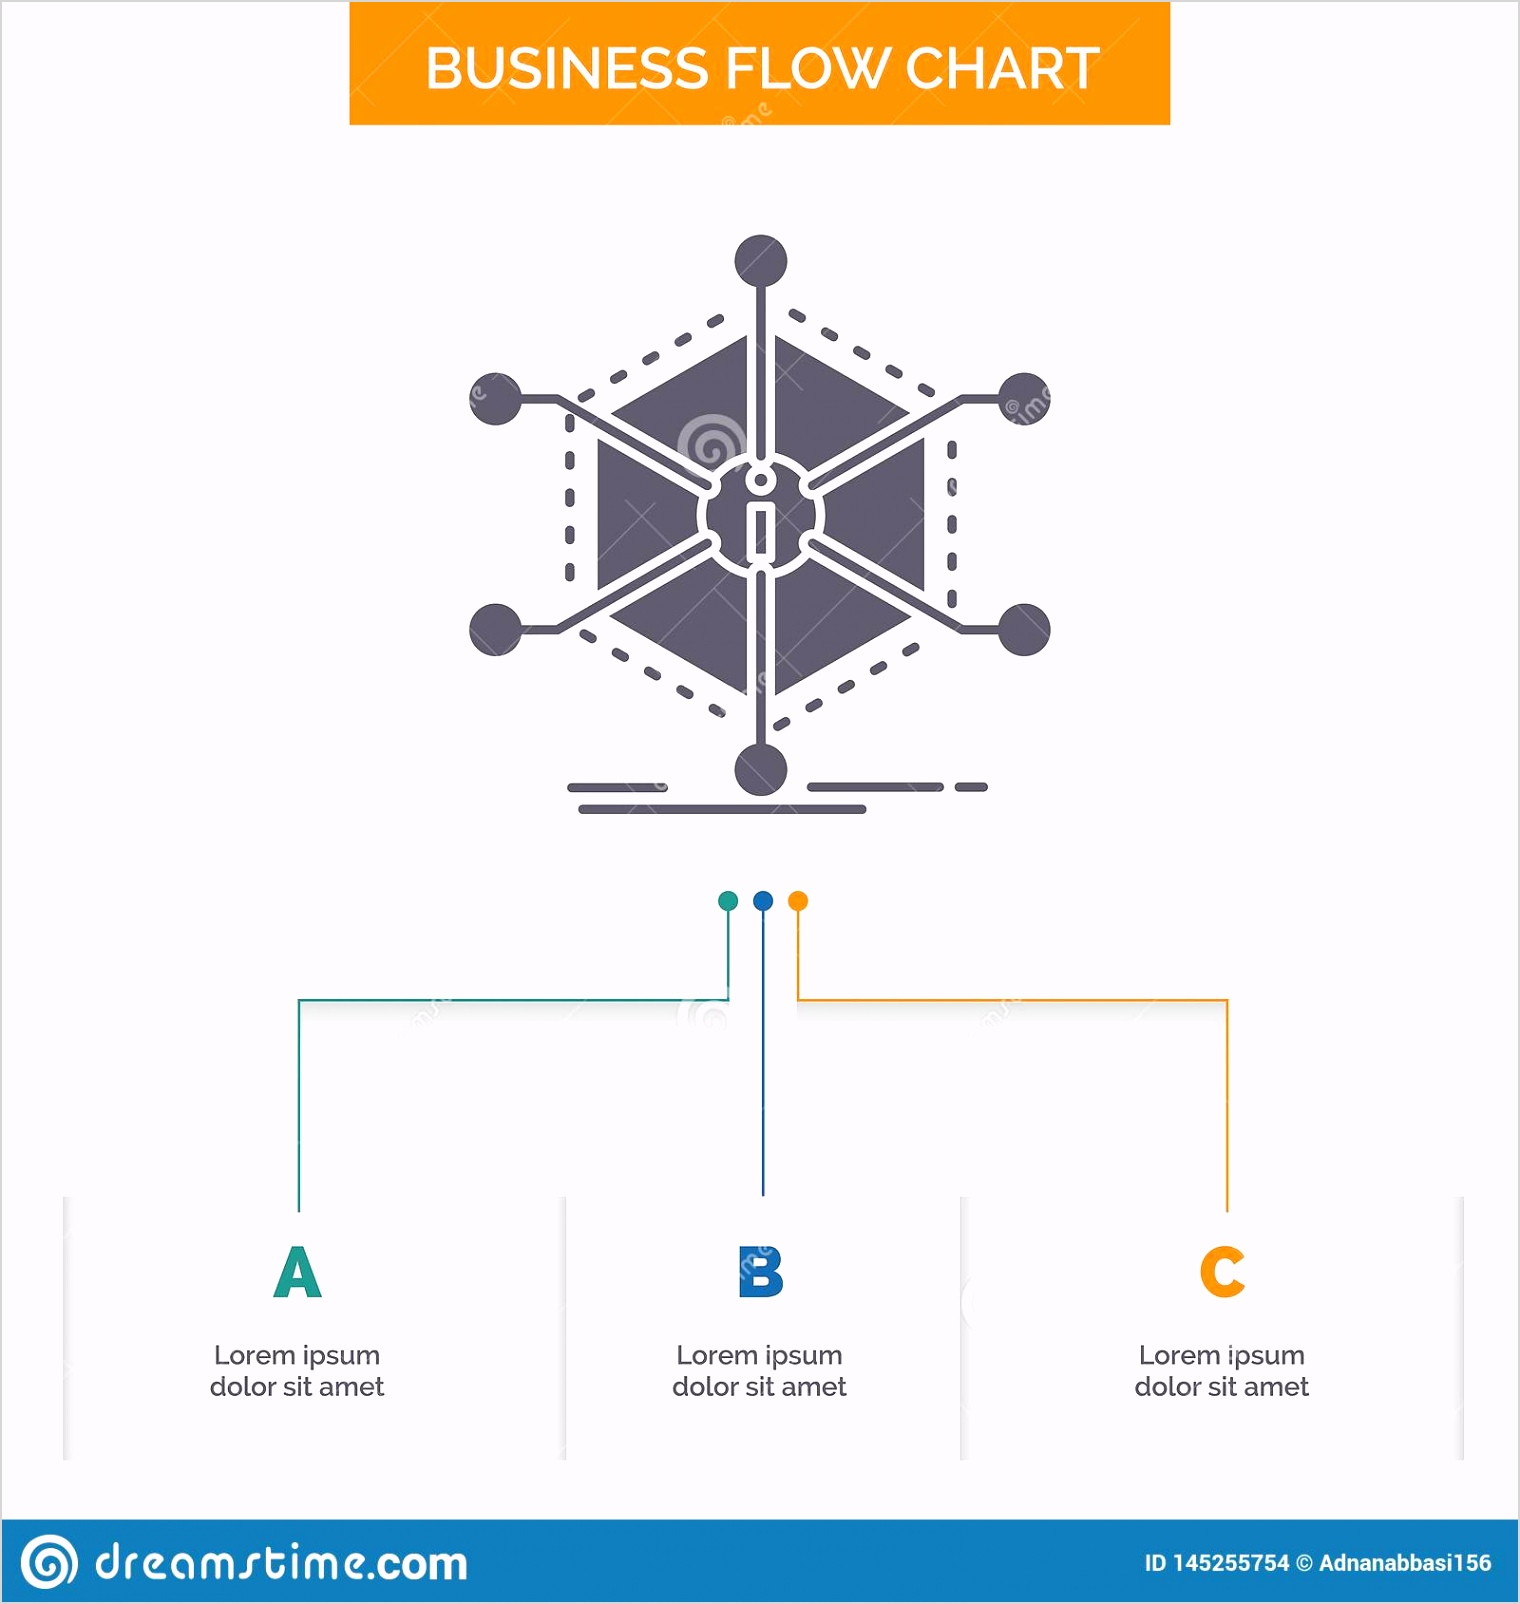 data help info information resources business flow chart design steps glyph icon presentation background template place